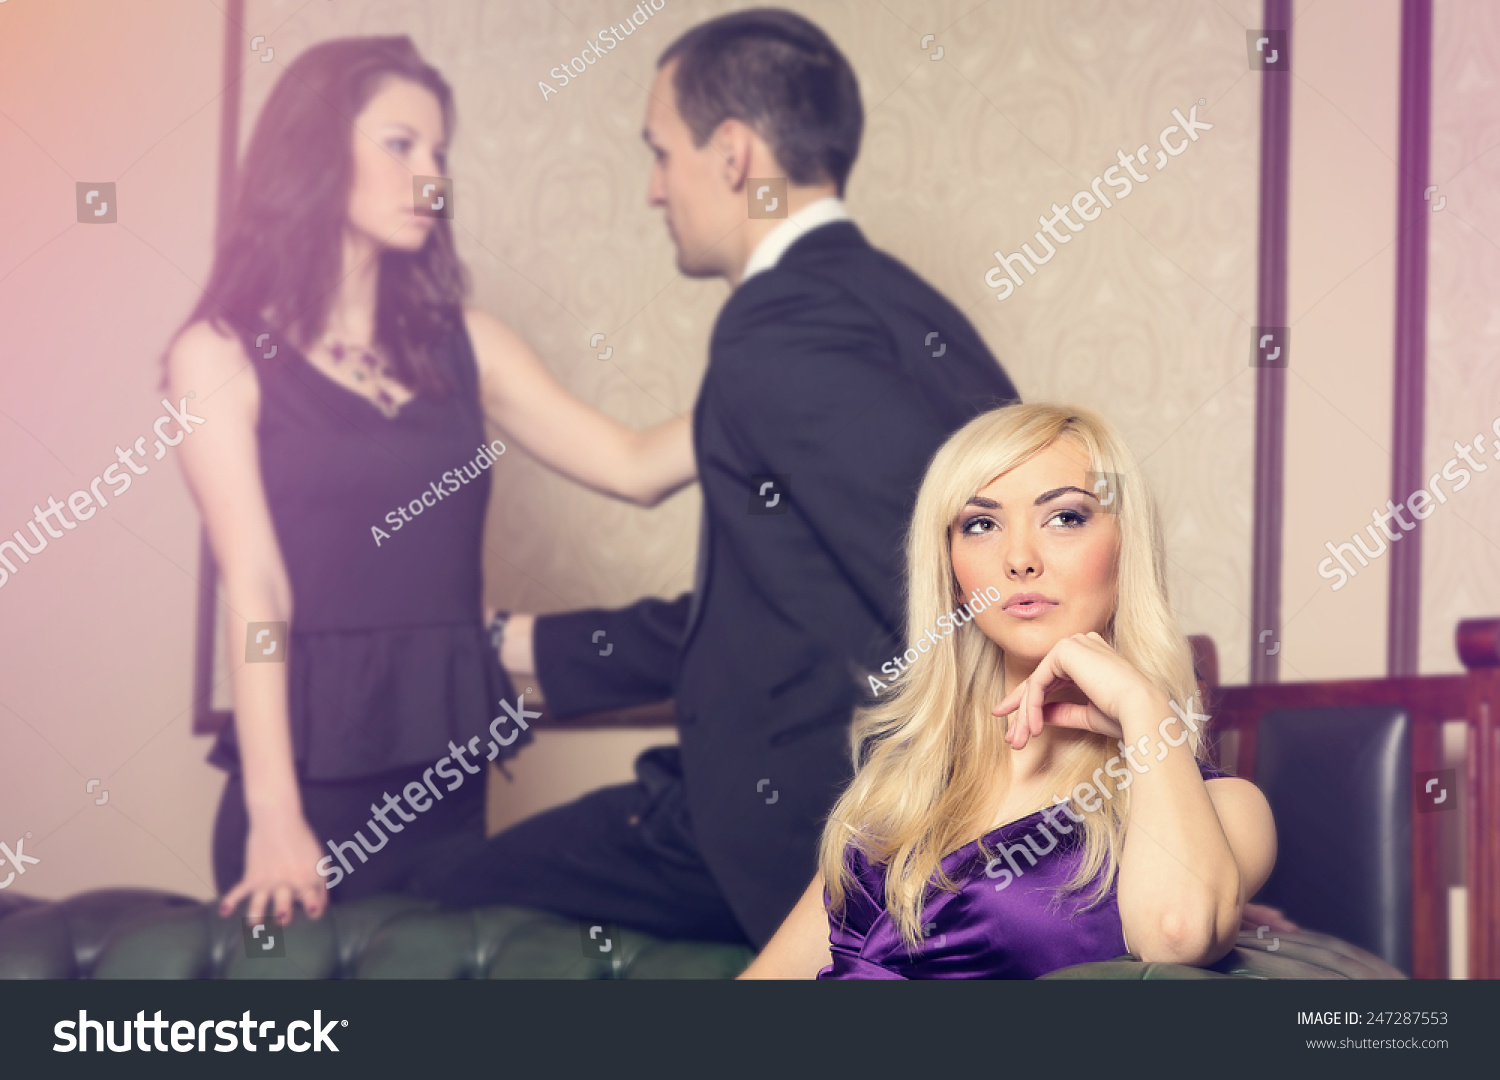 two women and a man in relationship